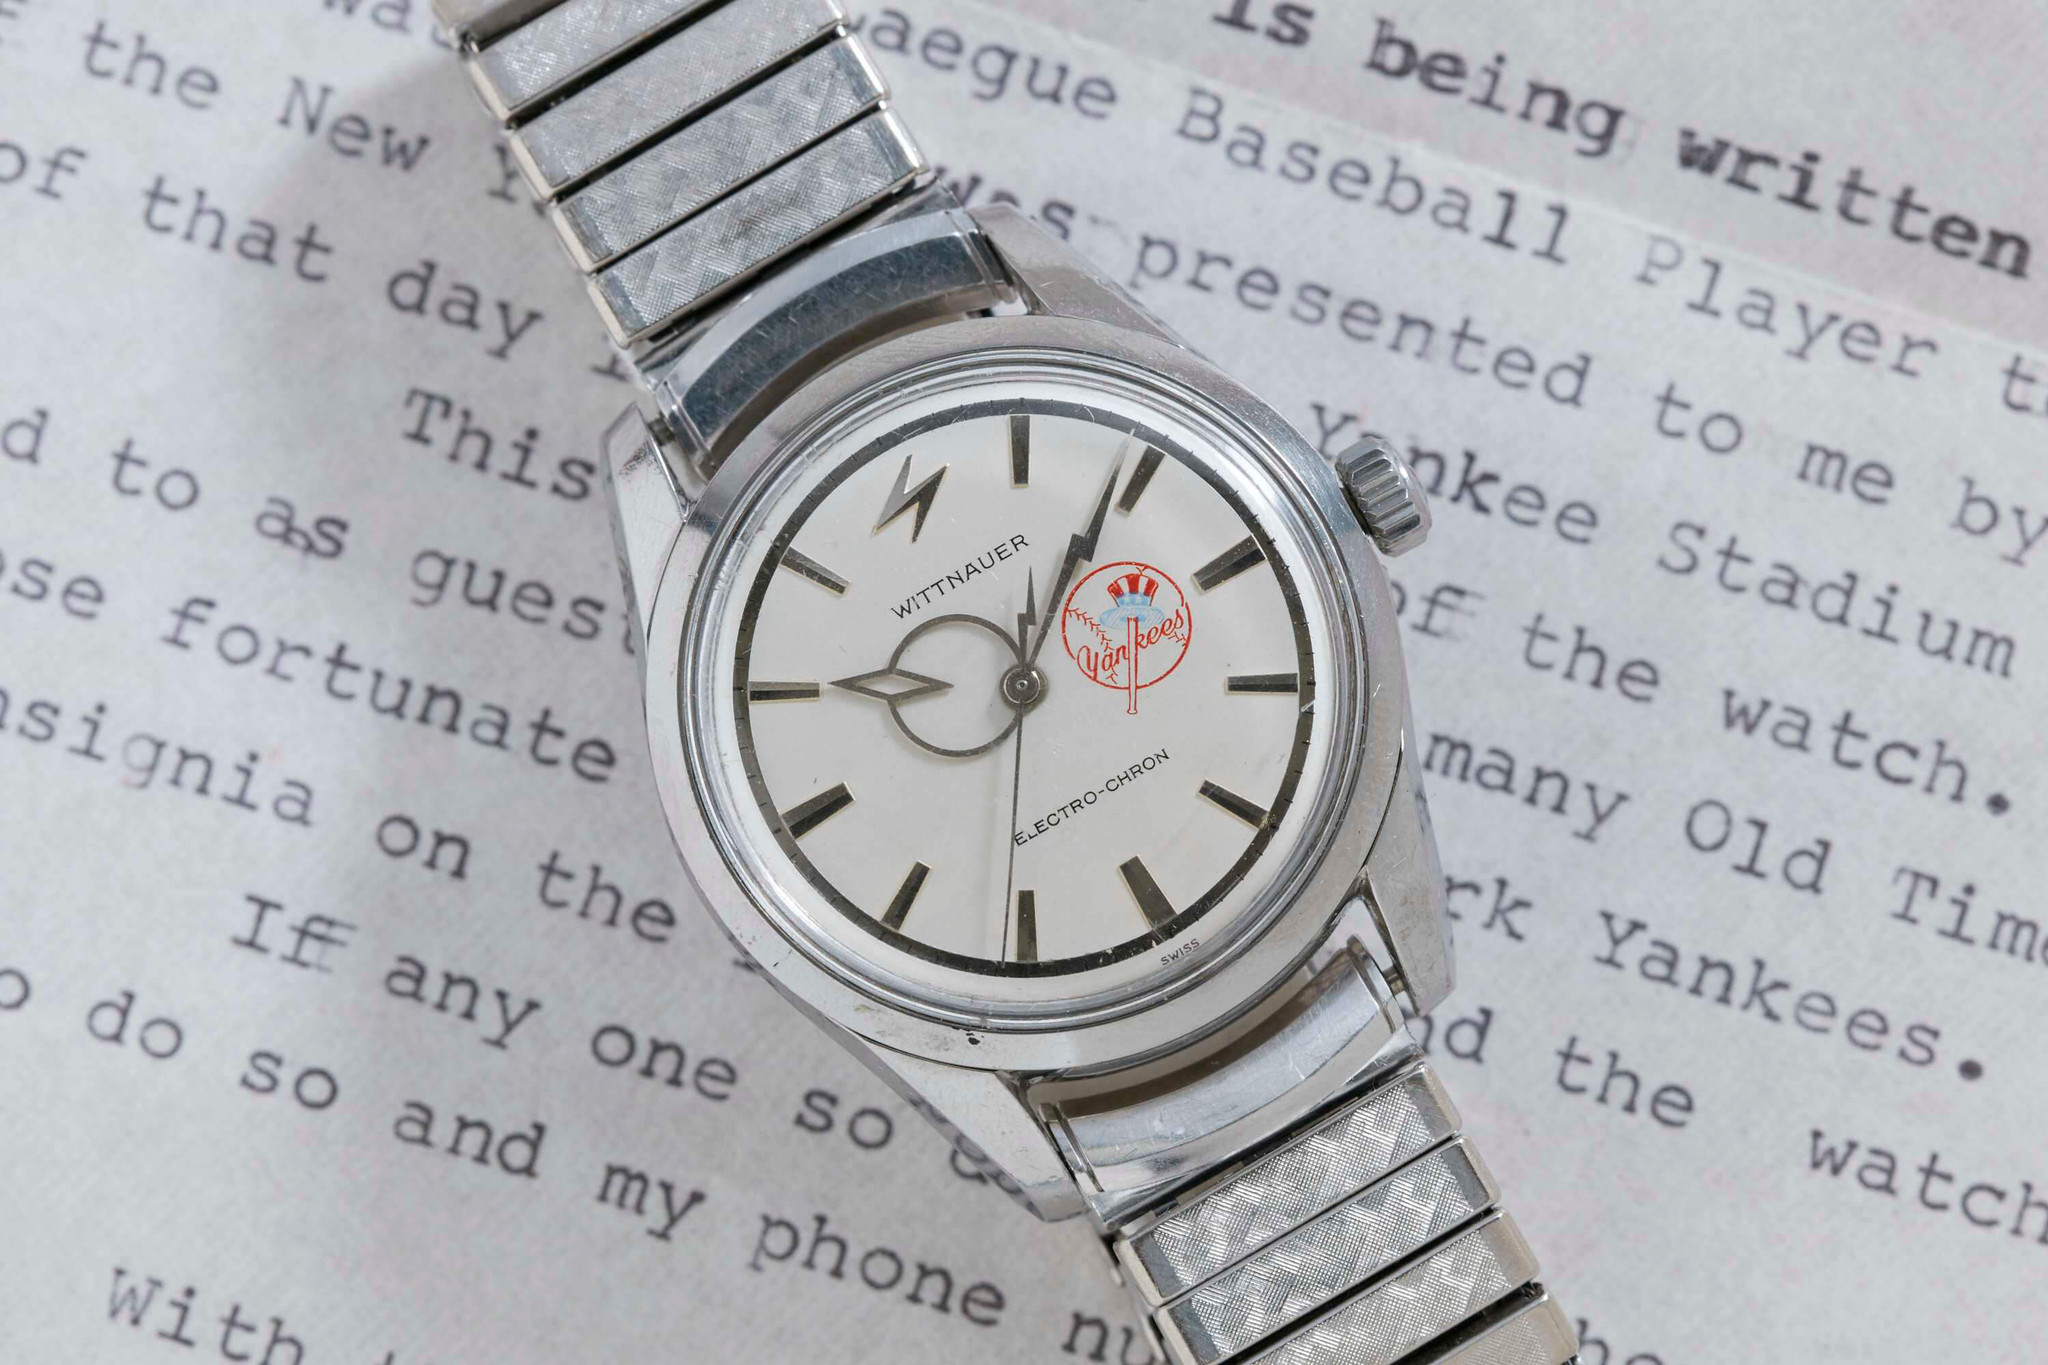 """Wittnauer Electro-Chron Watch once belonging to """"Rowdy"""" Bartell, MLB shortstop, sells for $10,000 on Analog/Shift auction."""